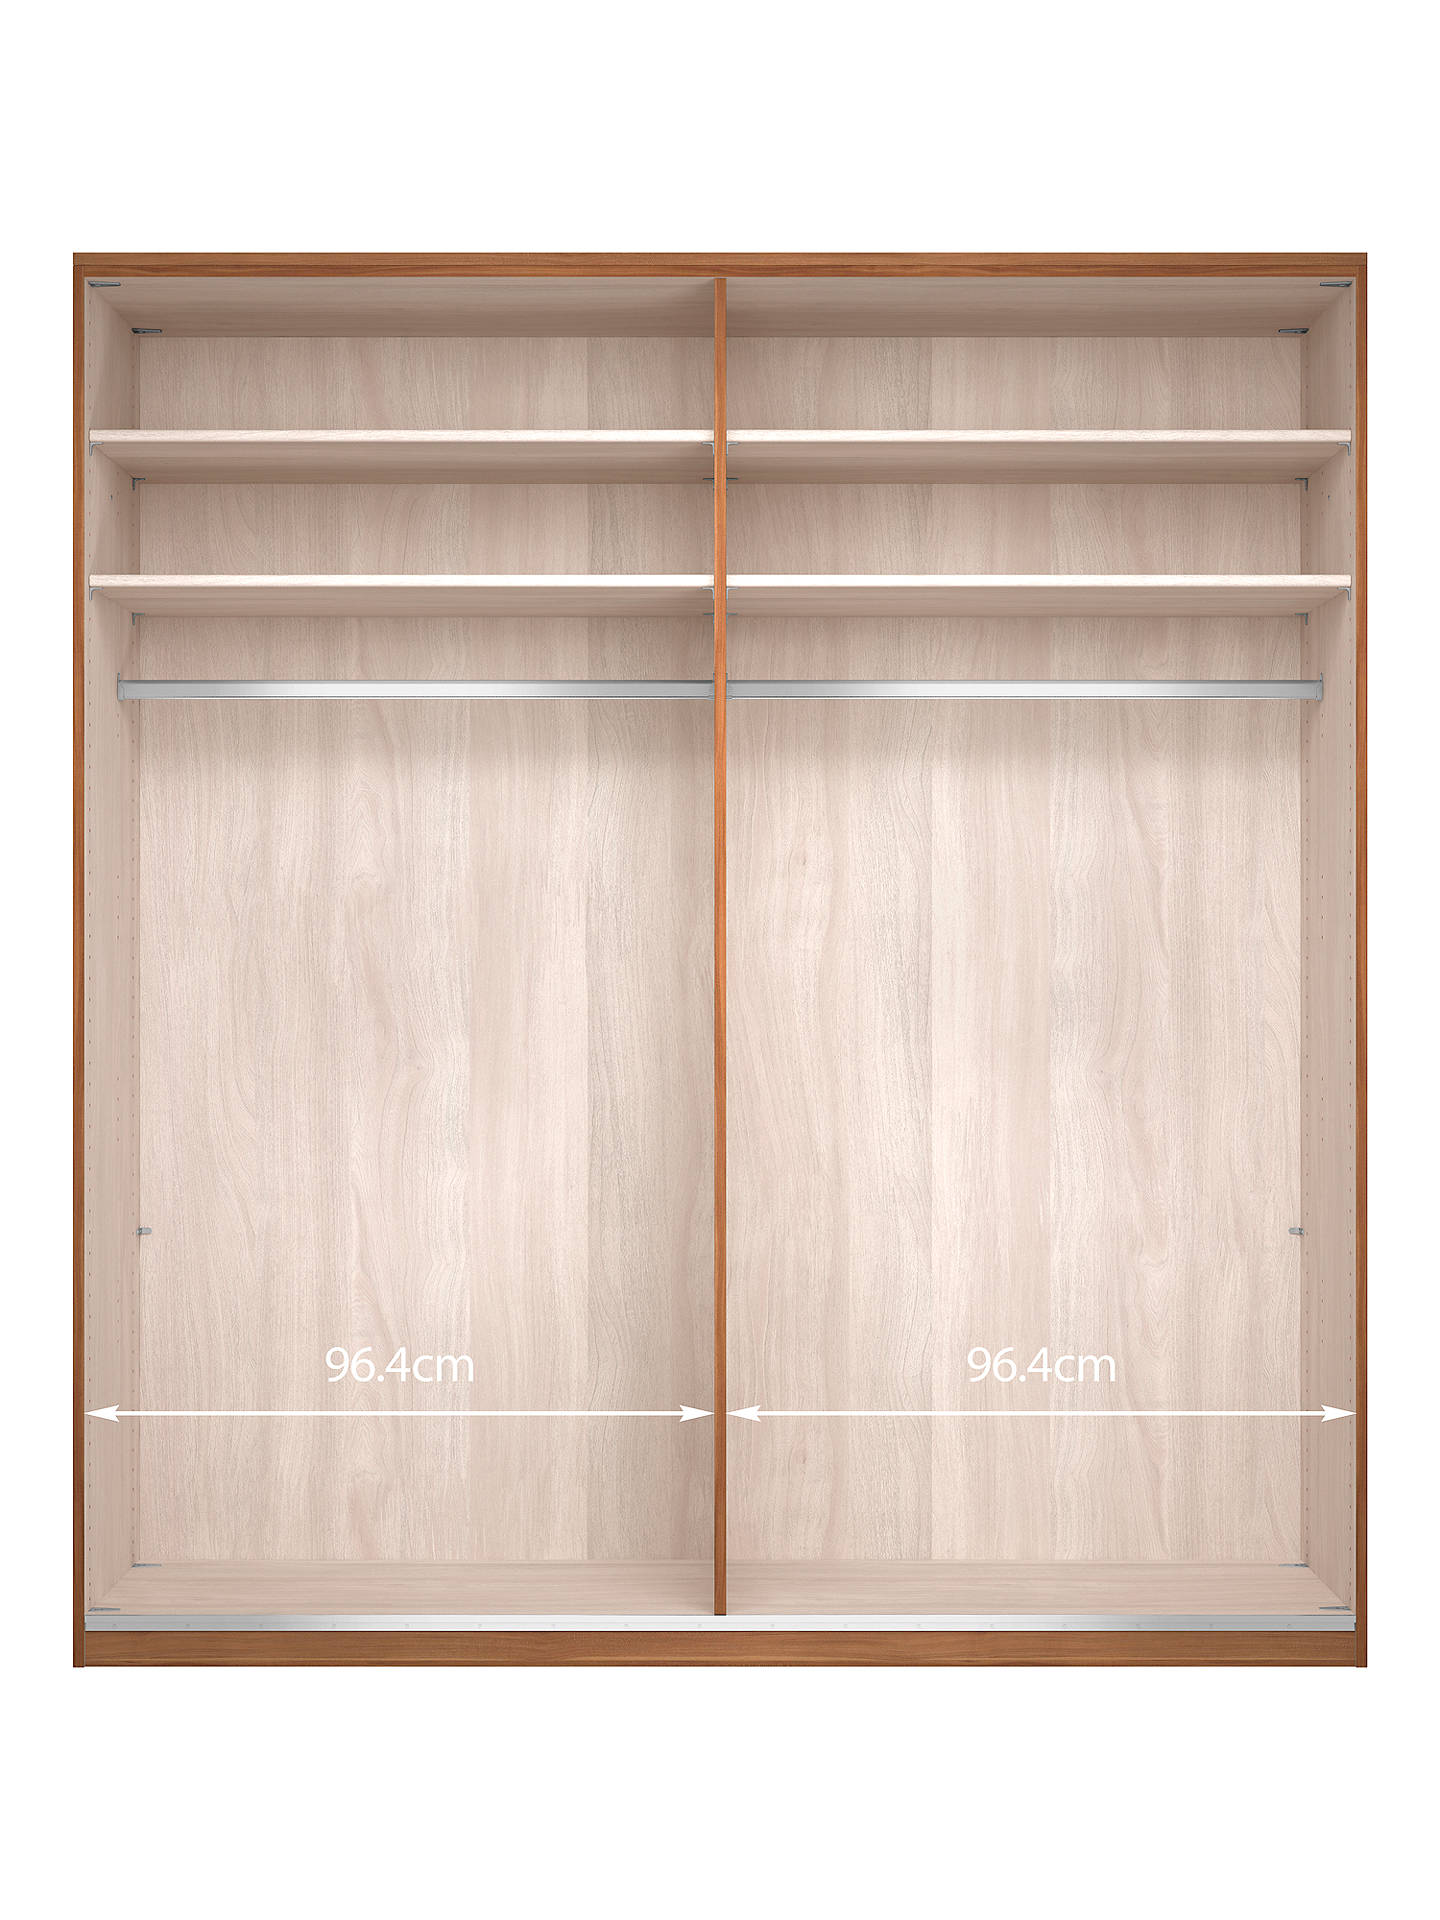 Buy John Lewis & Partners Elstra 200cm Wardrobe with White Glass and Mirrored Hinged Doors, White Glass/Light Rustic Oak Online at johnlewis.com